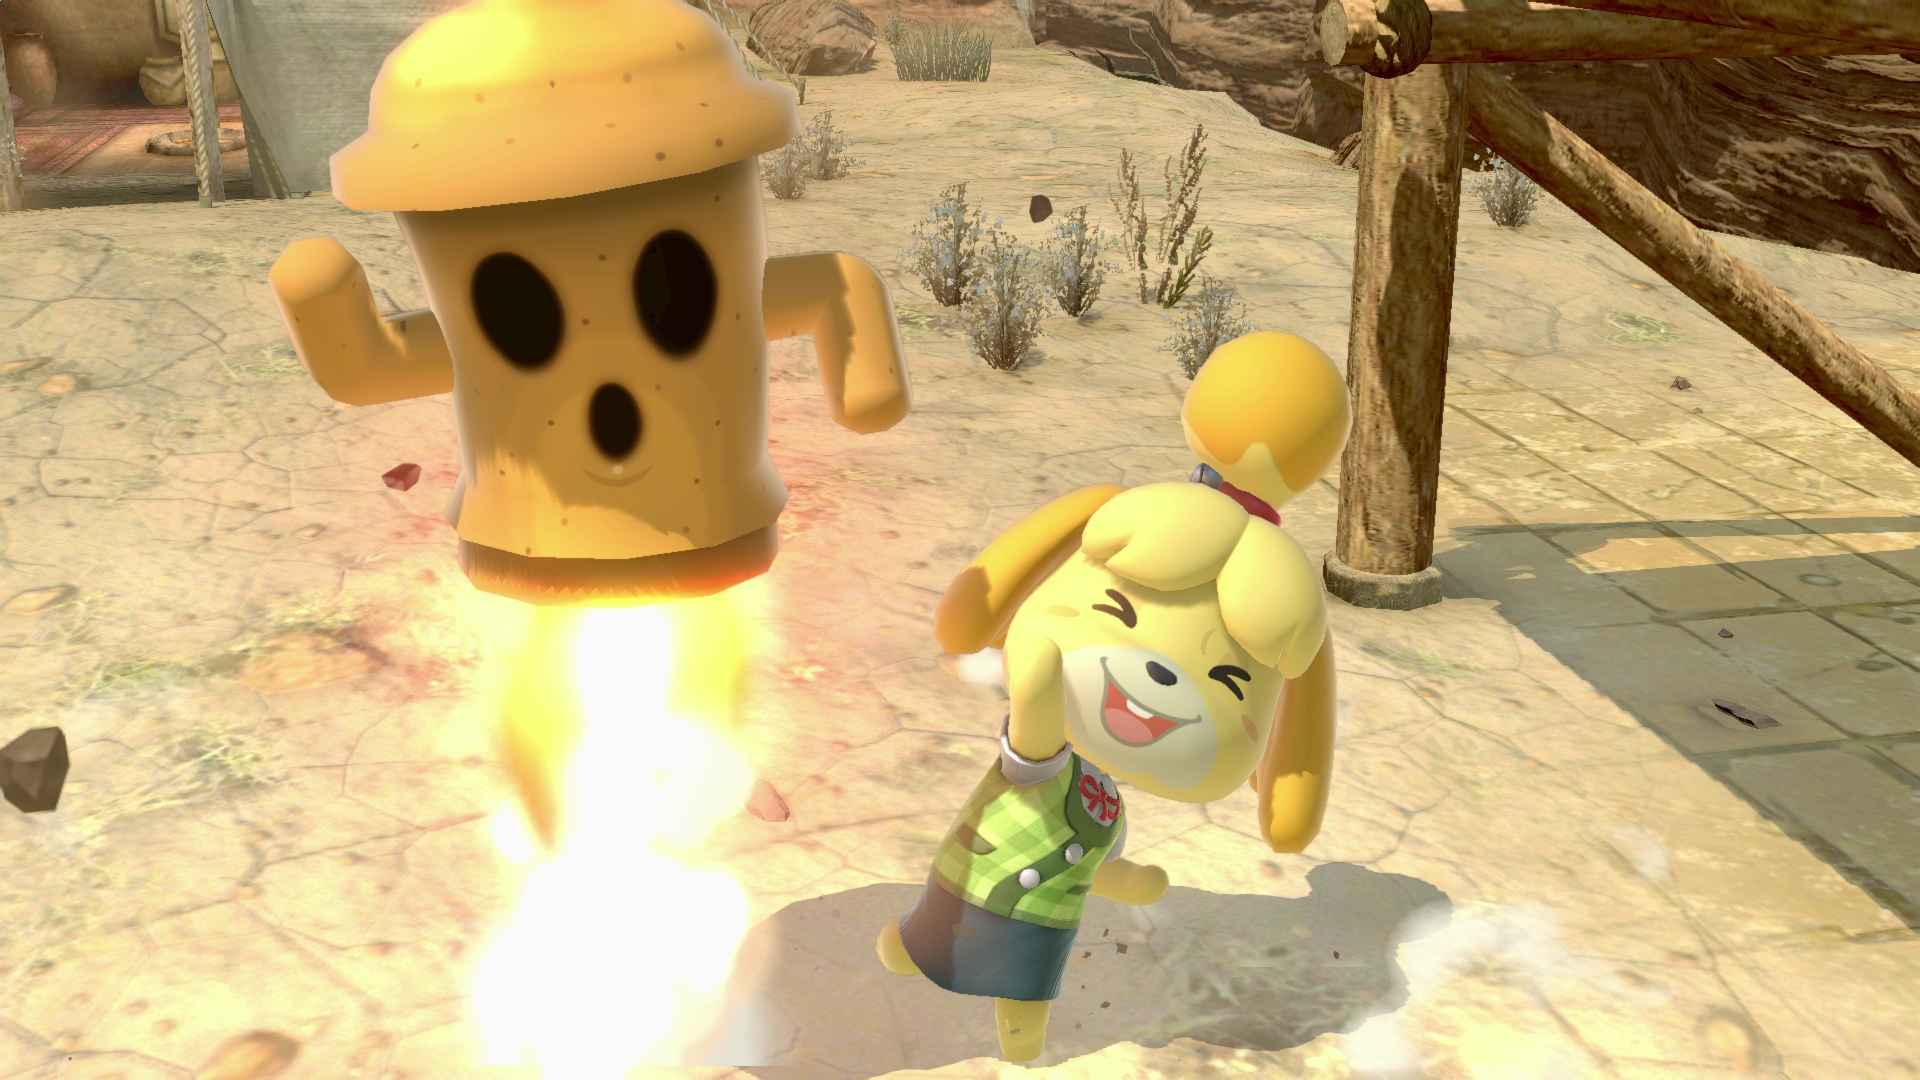 Animal Crossing Vine remakes are the best thing on Twitter right now